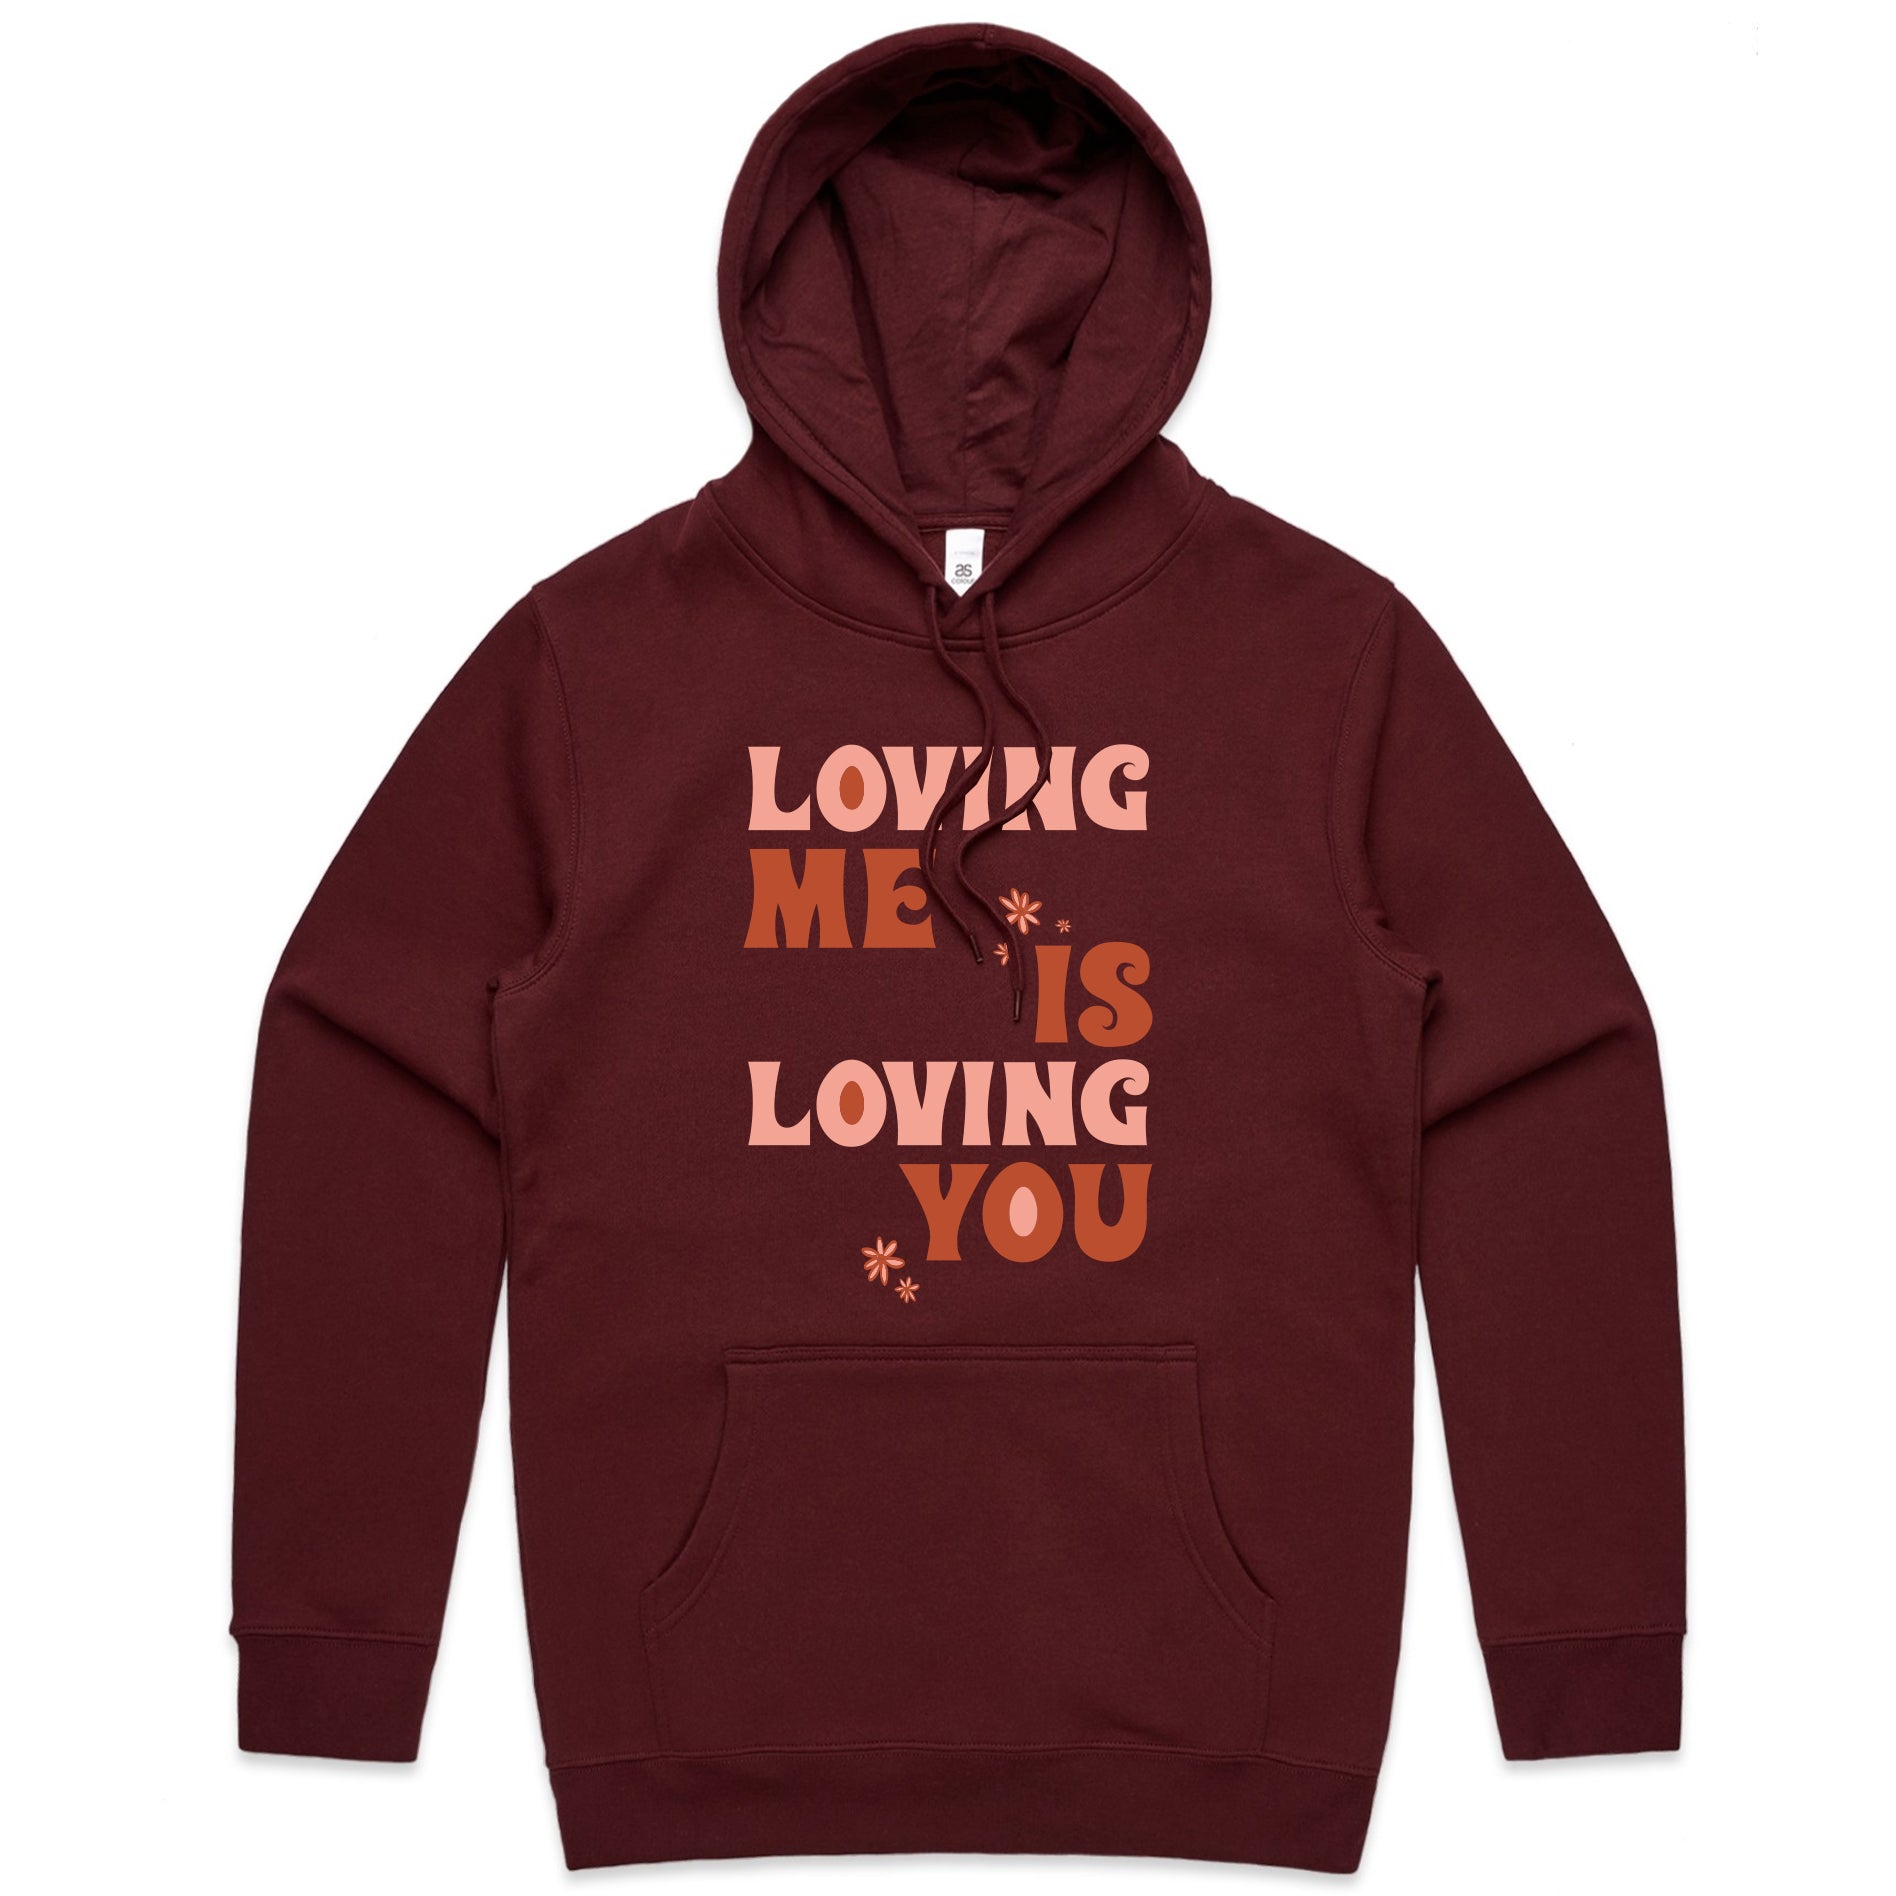 'Loving Me is Loving You' Text Version Hoodie